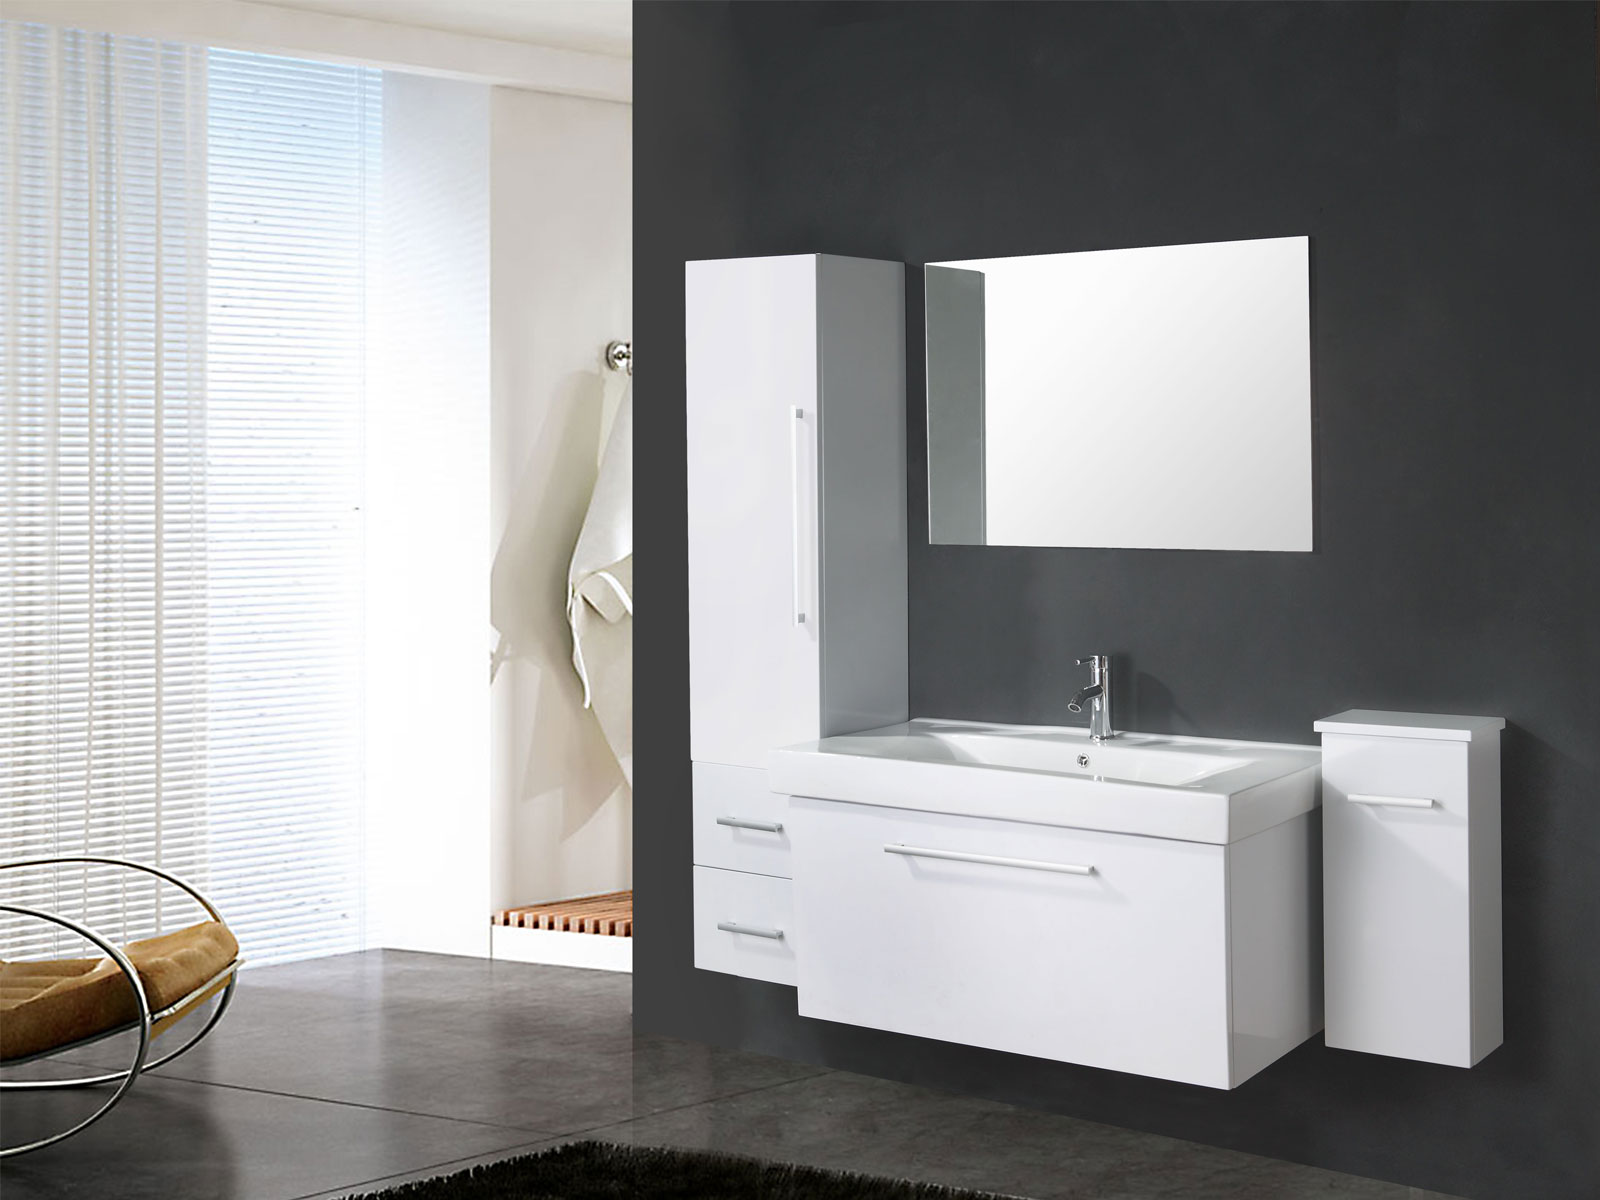 Mobile bagno arredo bagno 100 cm lavabo e colonne incluse for Mobile lavabo